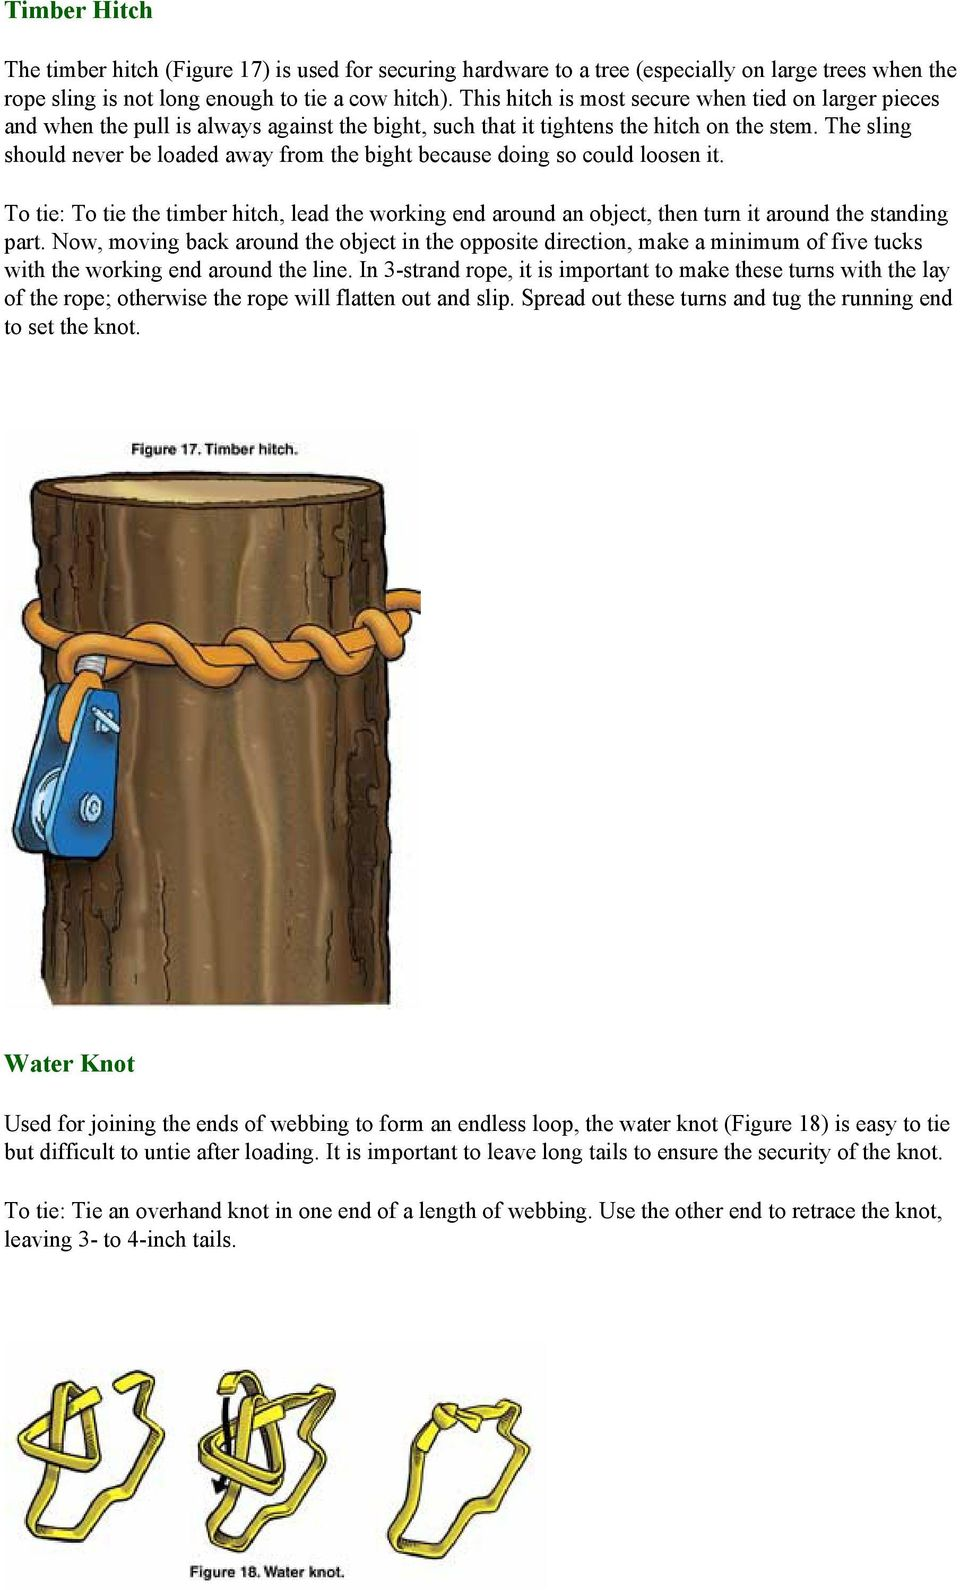 The sling should never be loaded away from the bight because doing so could loosen it. To tie: To tie the timber hitch, lead the working end around an object, then turn it around the standing part.